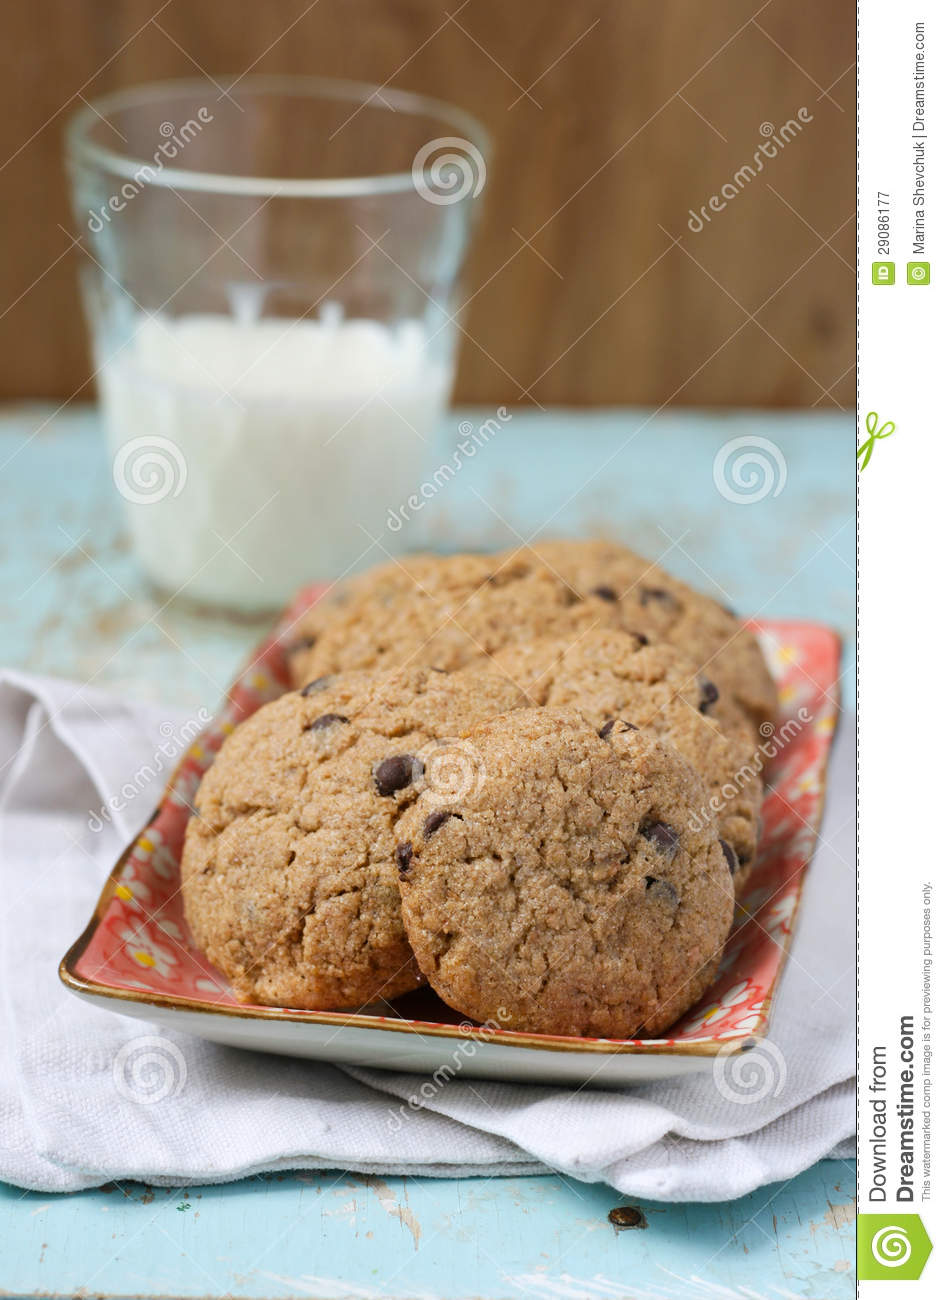 Buckwheat Cookies With Chocolate Chips Royalty Free Stock ...